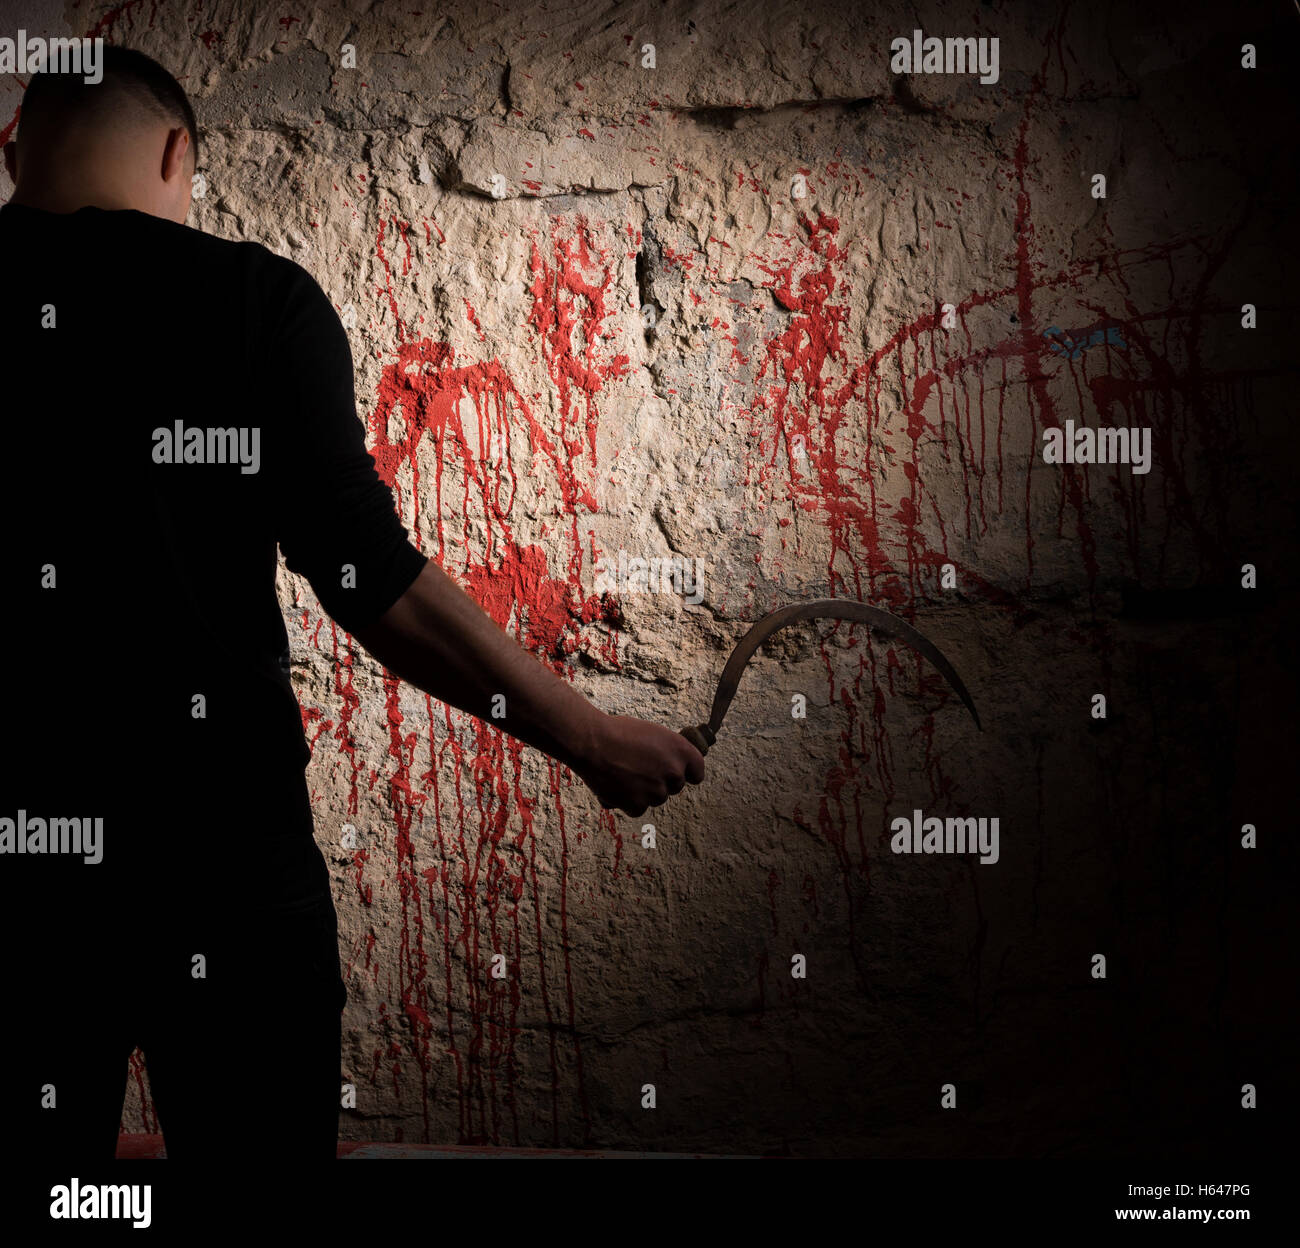 Shadowy figure holding sickle near blood stained wall for concept about murder and scary Halloween holiday Stock Photo